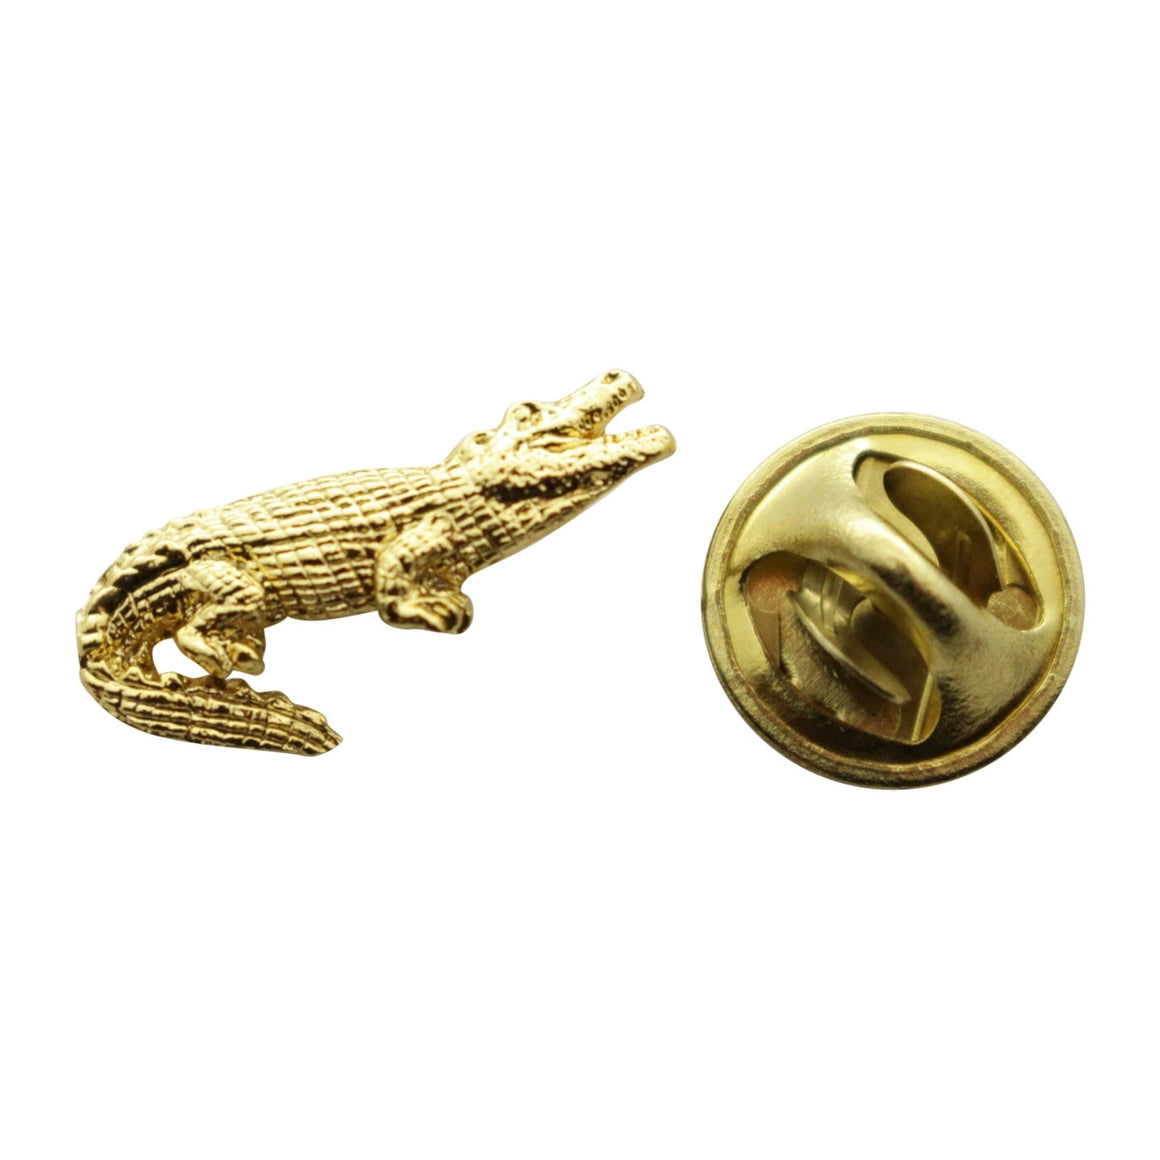 Alligator Mini Pin ~ 24K Gold ~ Miniature Lapel Pin ~ 24K Gold Miniature Lapel Pin ~ Sarah's Treats & Treasures